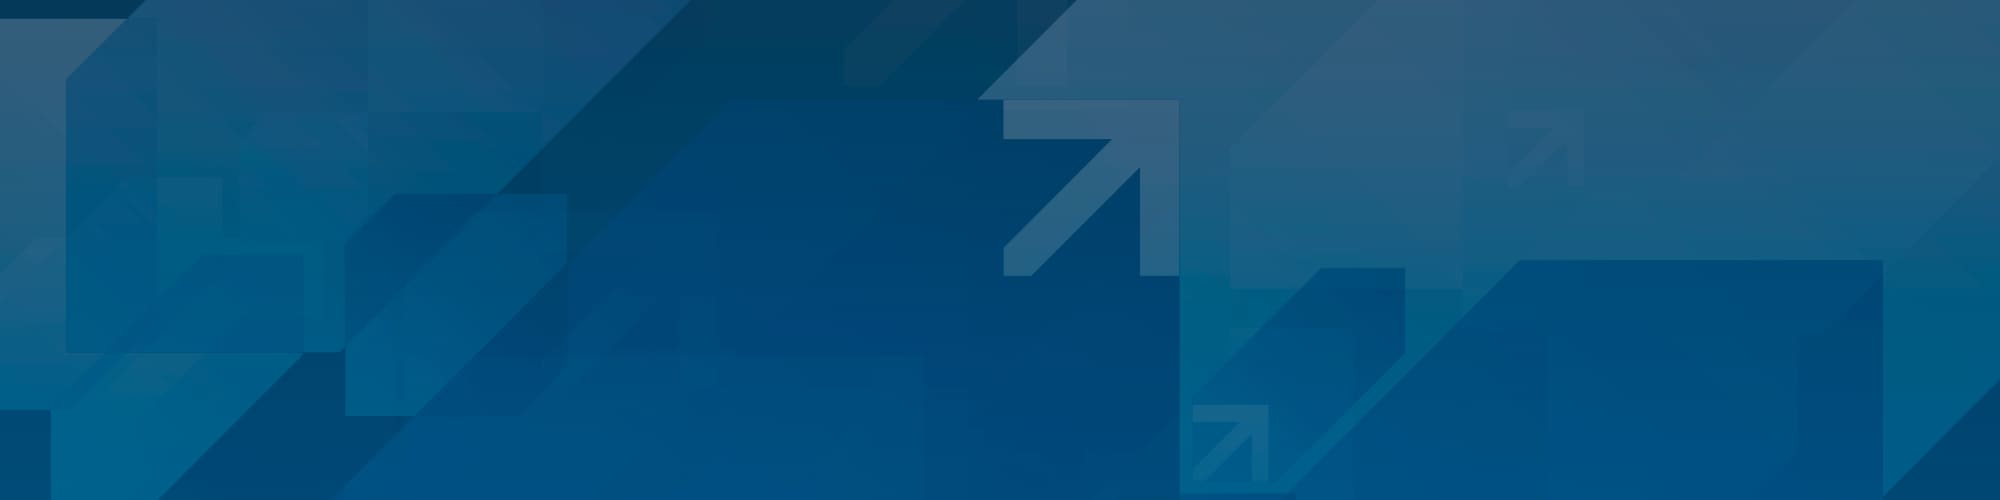 A series of blue abstract arrows in diagonally position